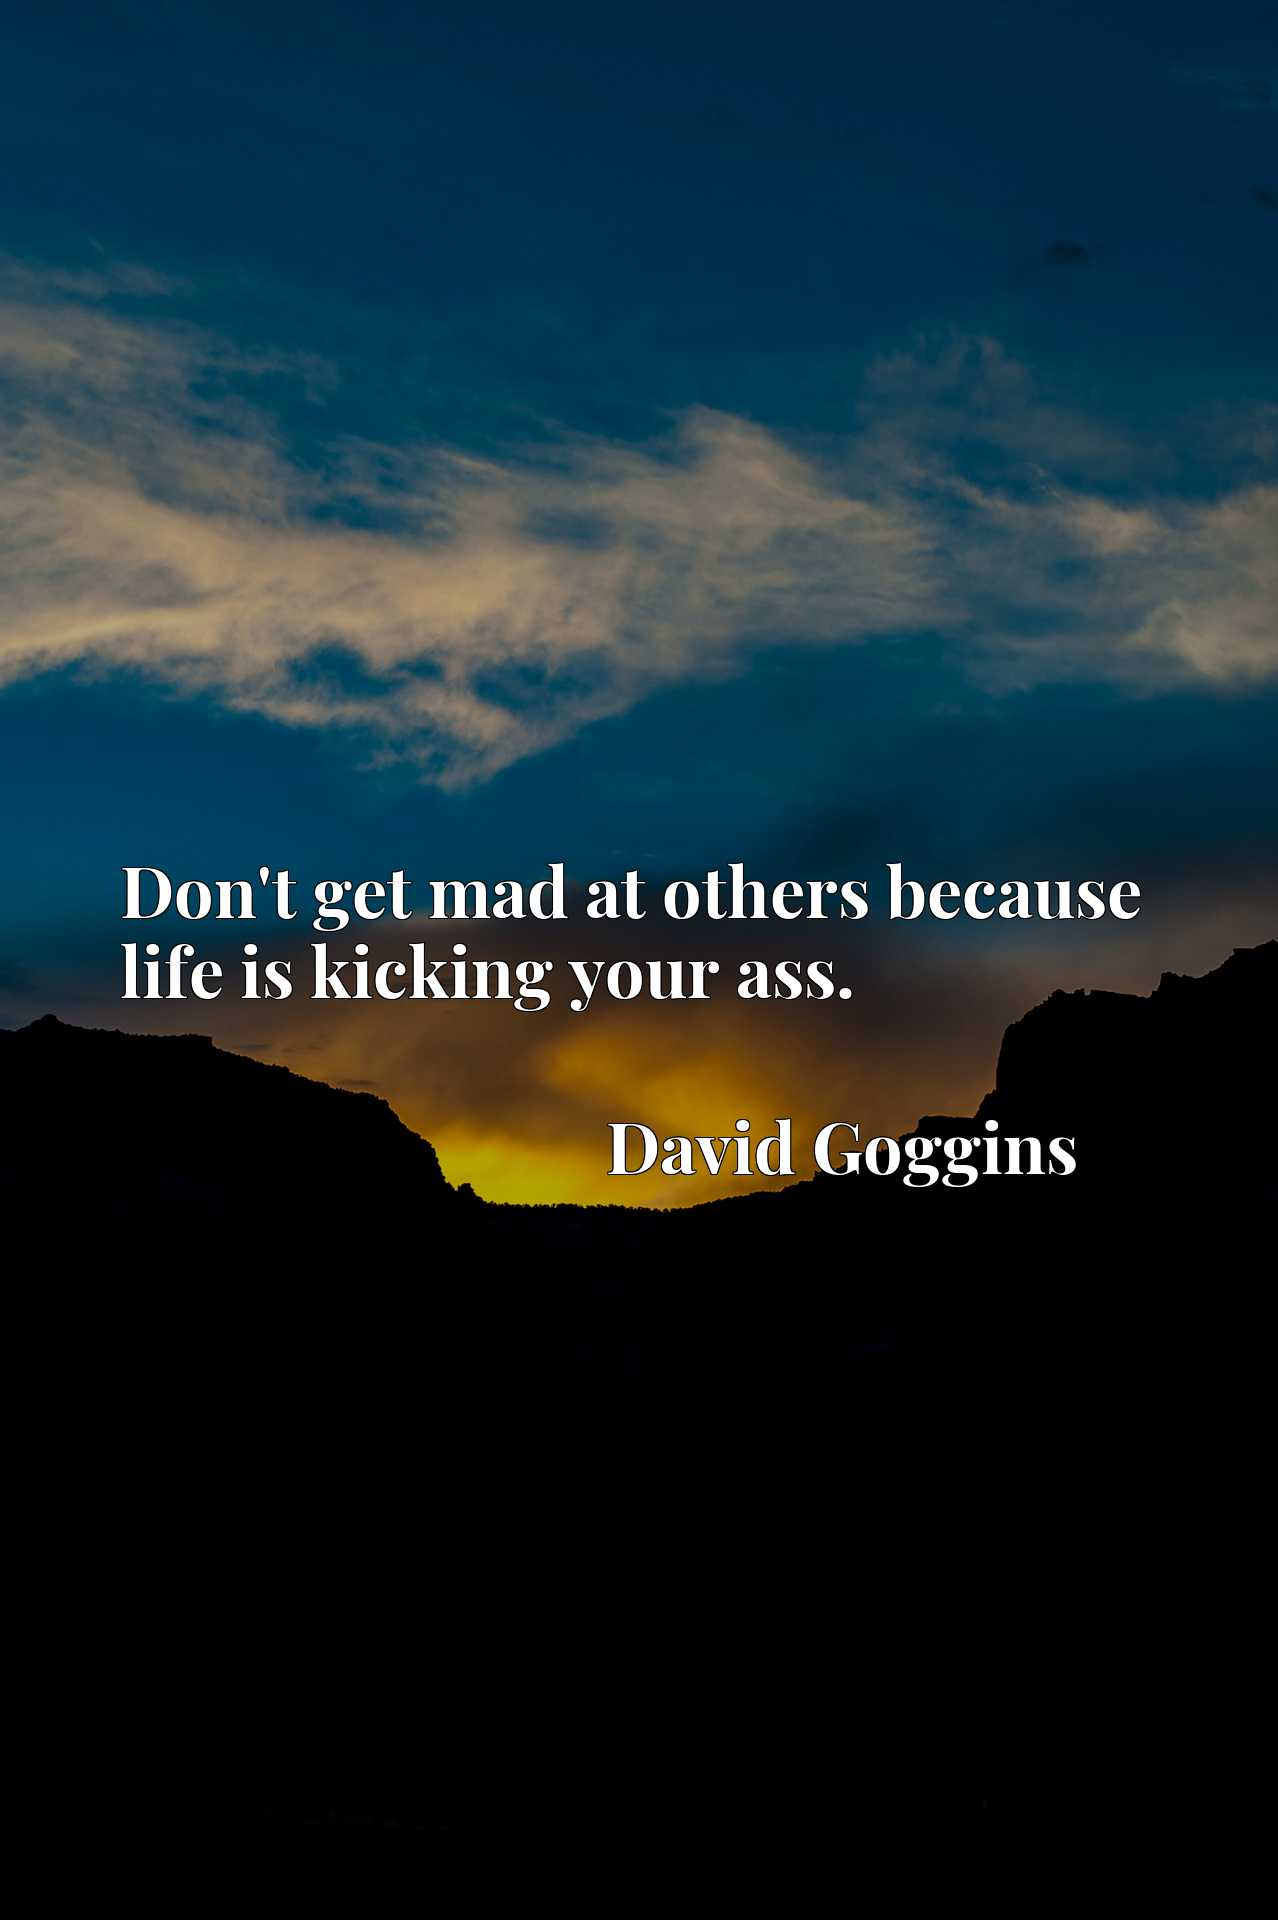 Quote Picture :Don't get mad at others because life is kicking your ass.